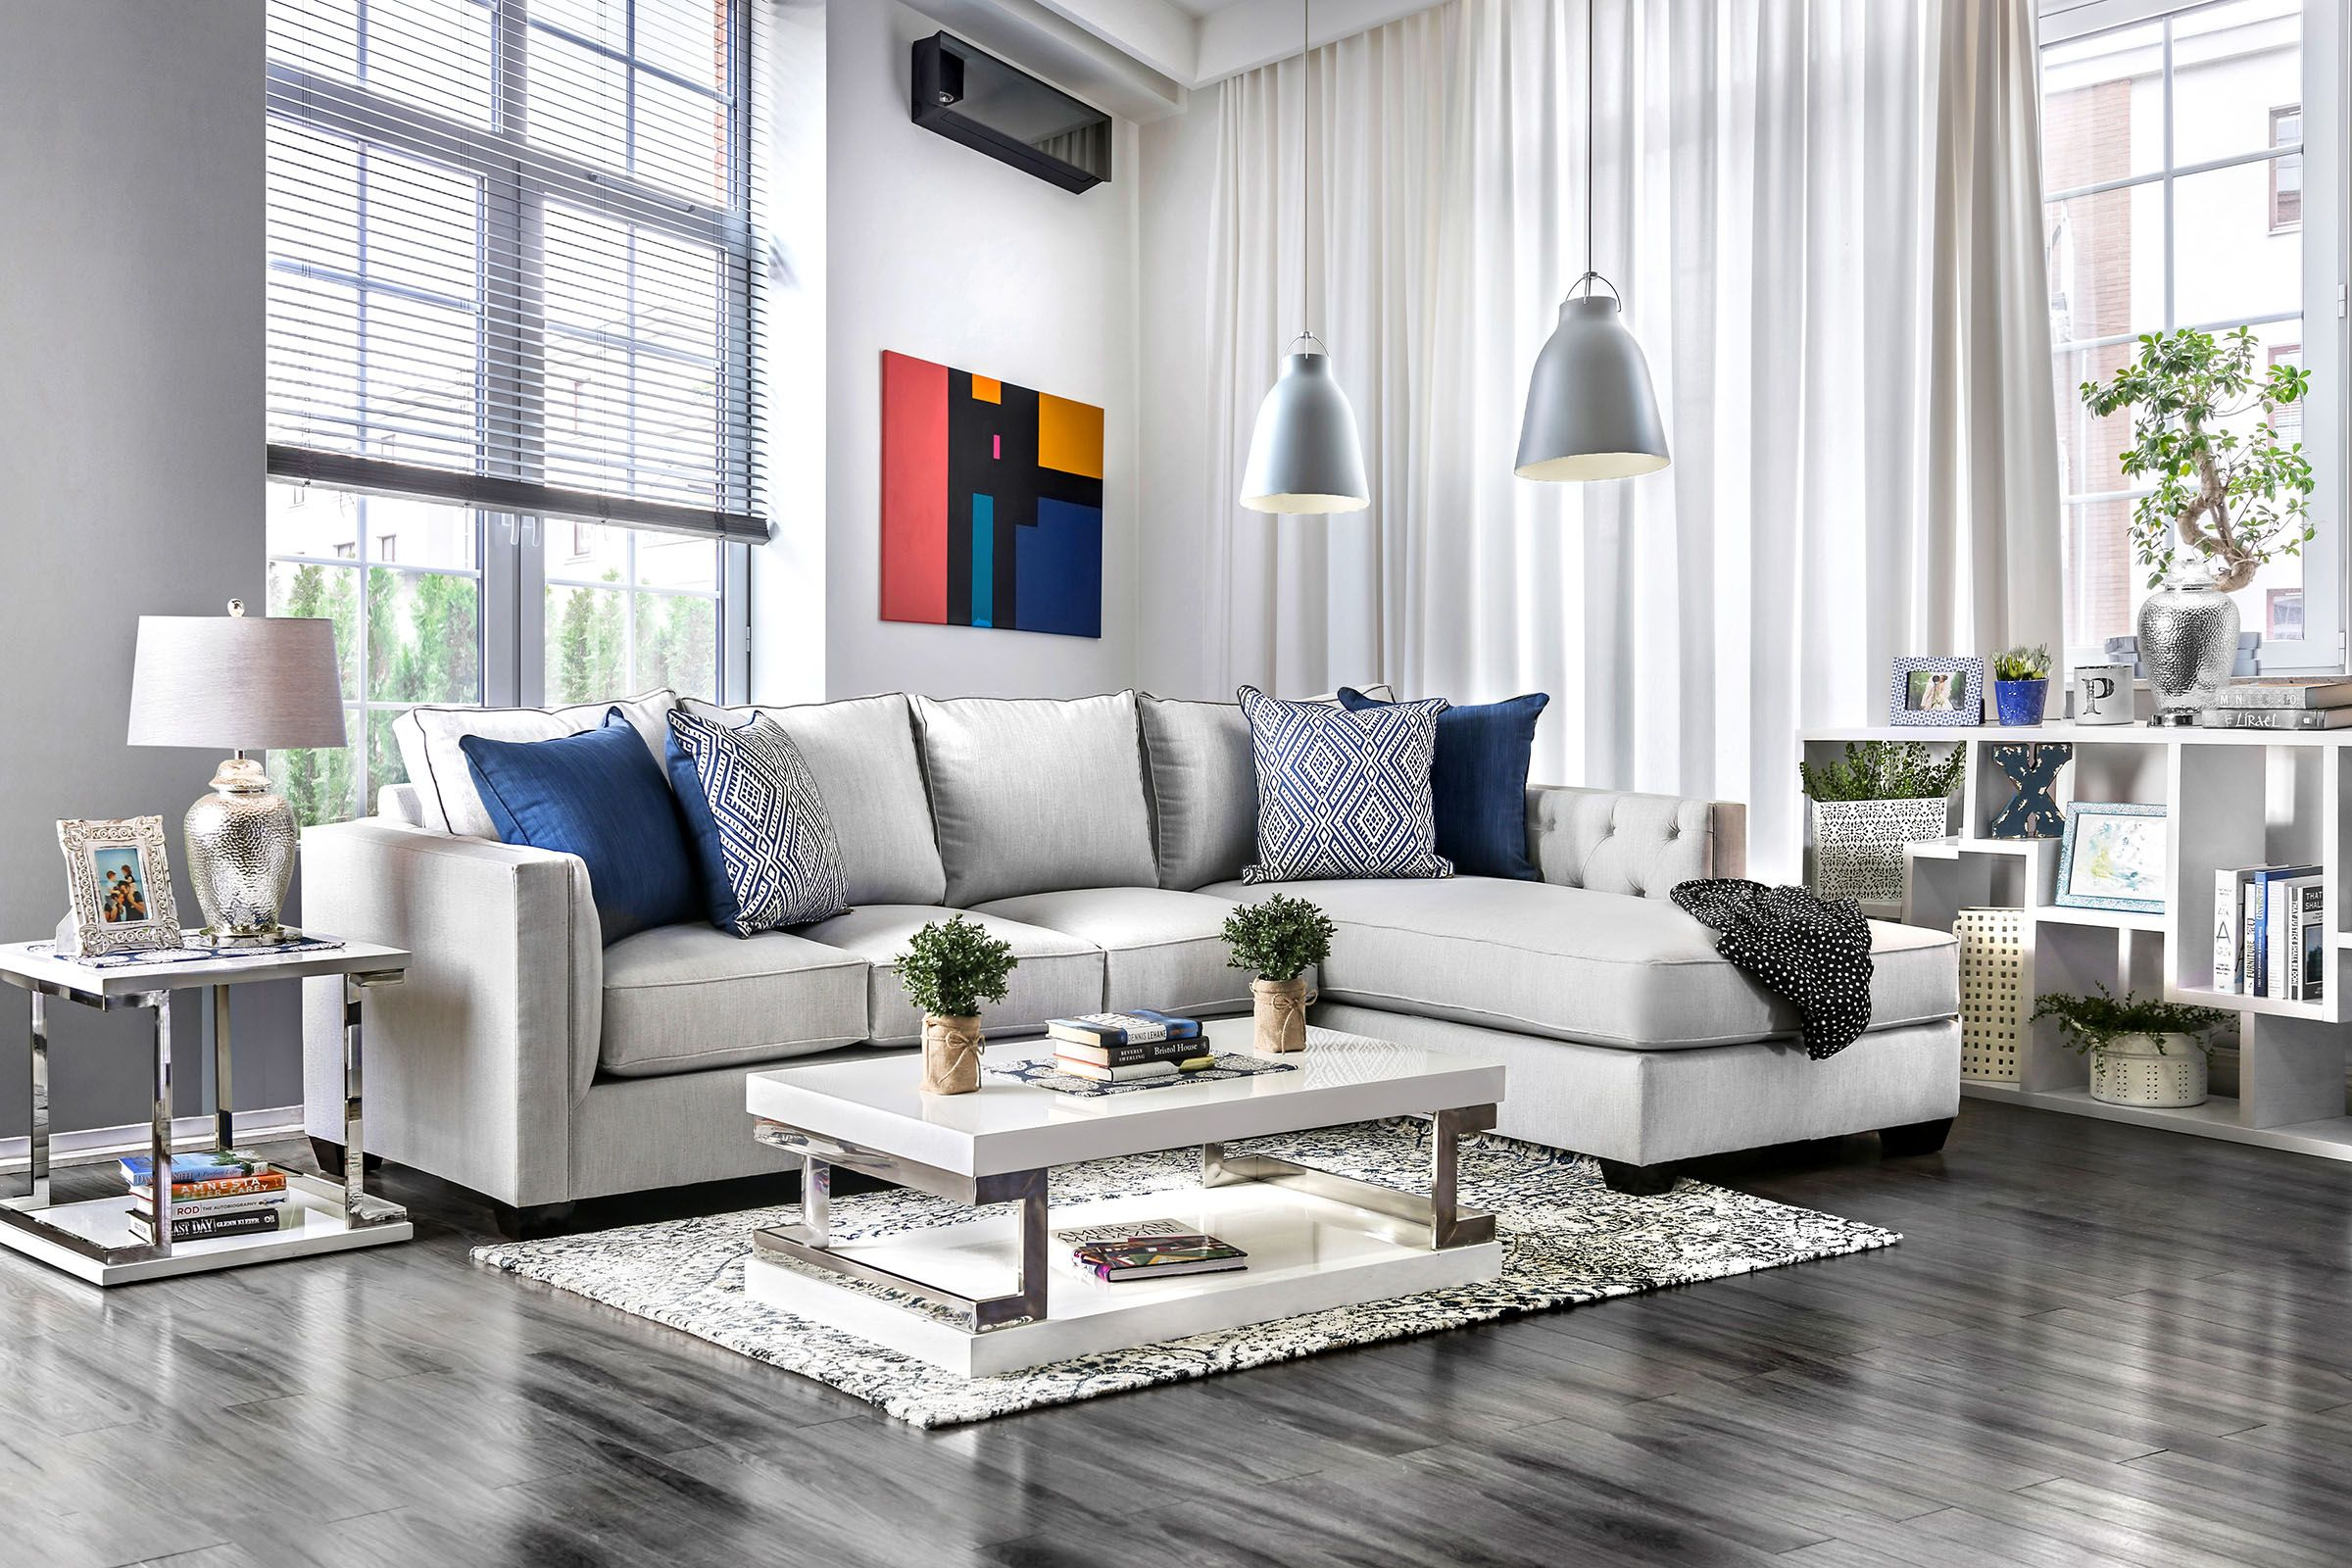 Ornella 2671 Shelter Arm Sectional | Grey sectional